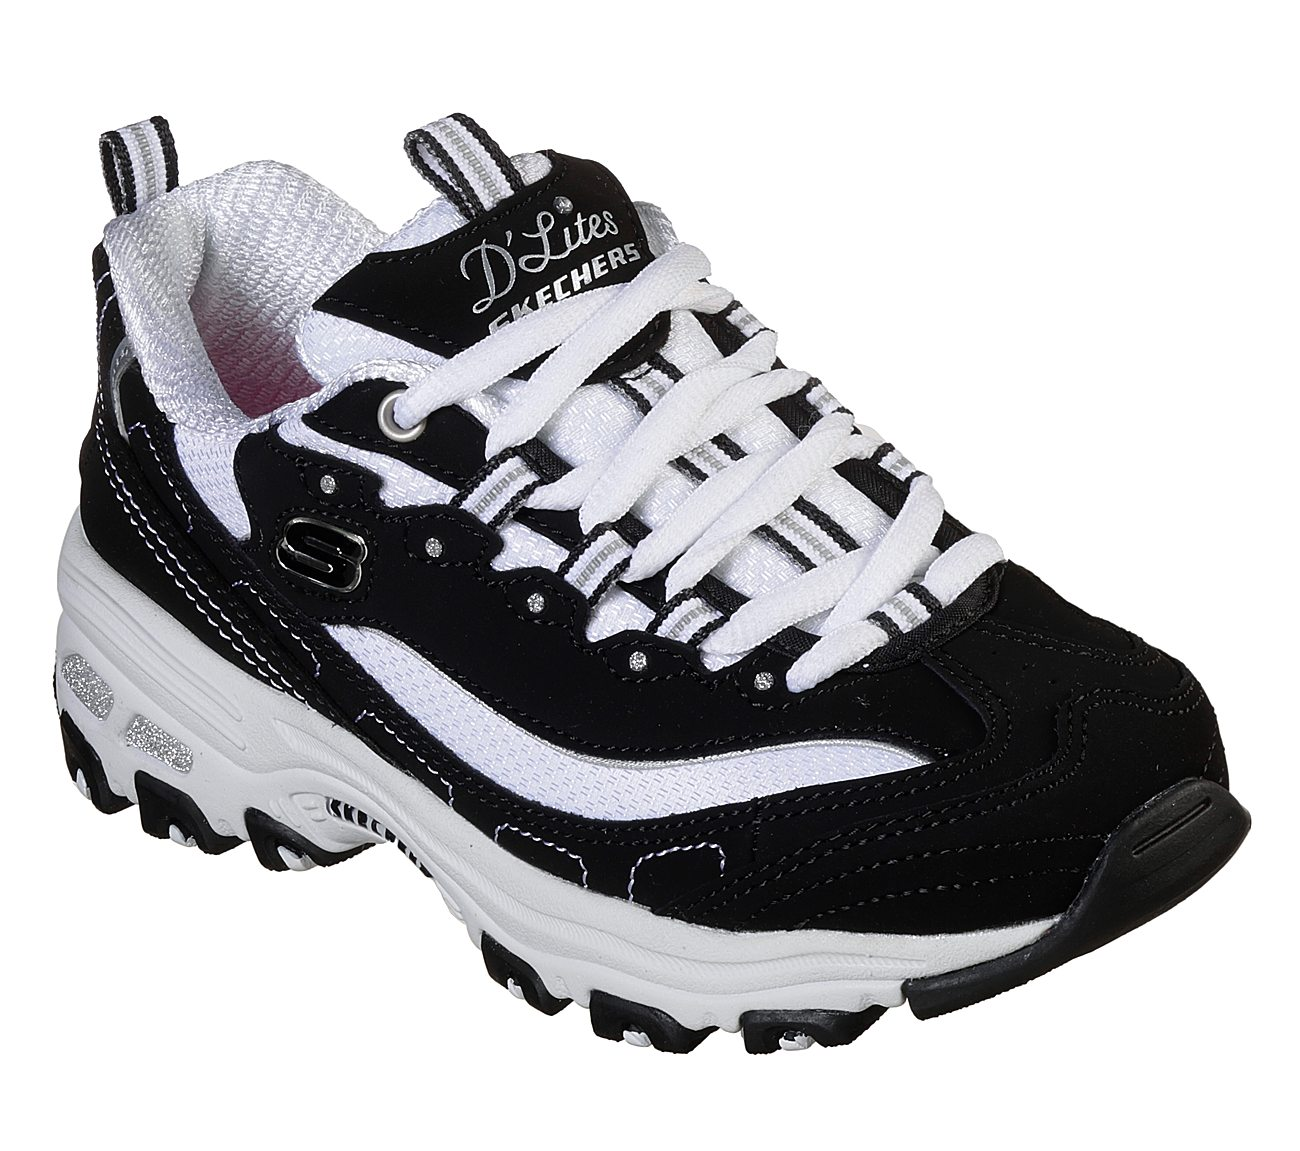 3f0a57c119ca Buy SKECHERS D'Lites - Biggest Fan D'Lites Shoes only $52.00